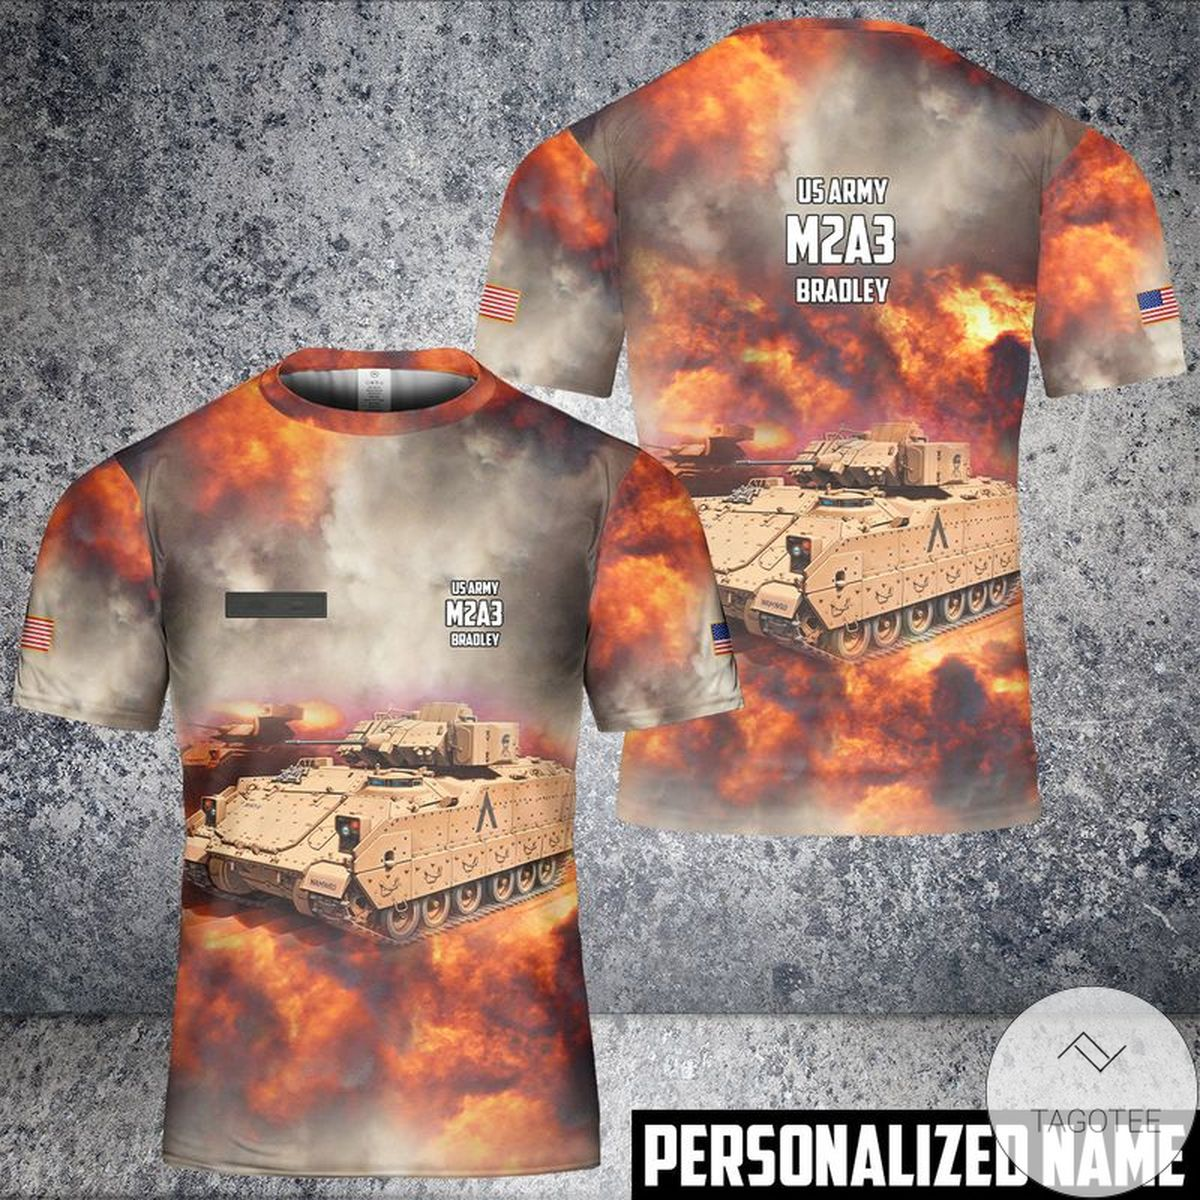 Personalized Name US Army M2A3 Bradley T-Shirt